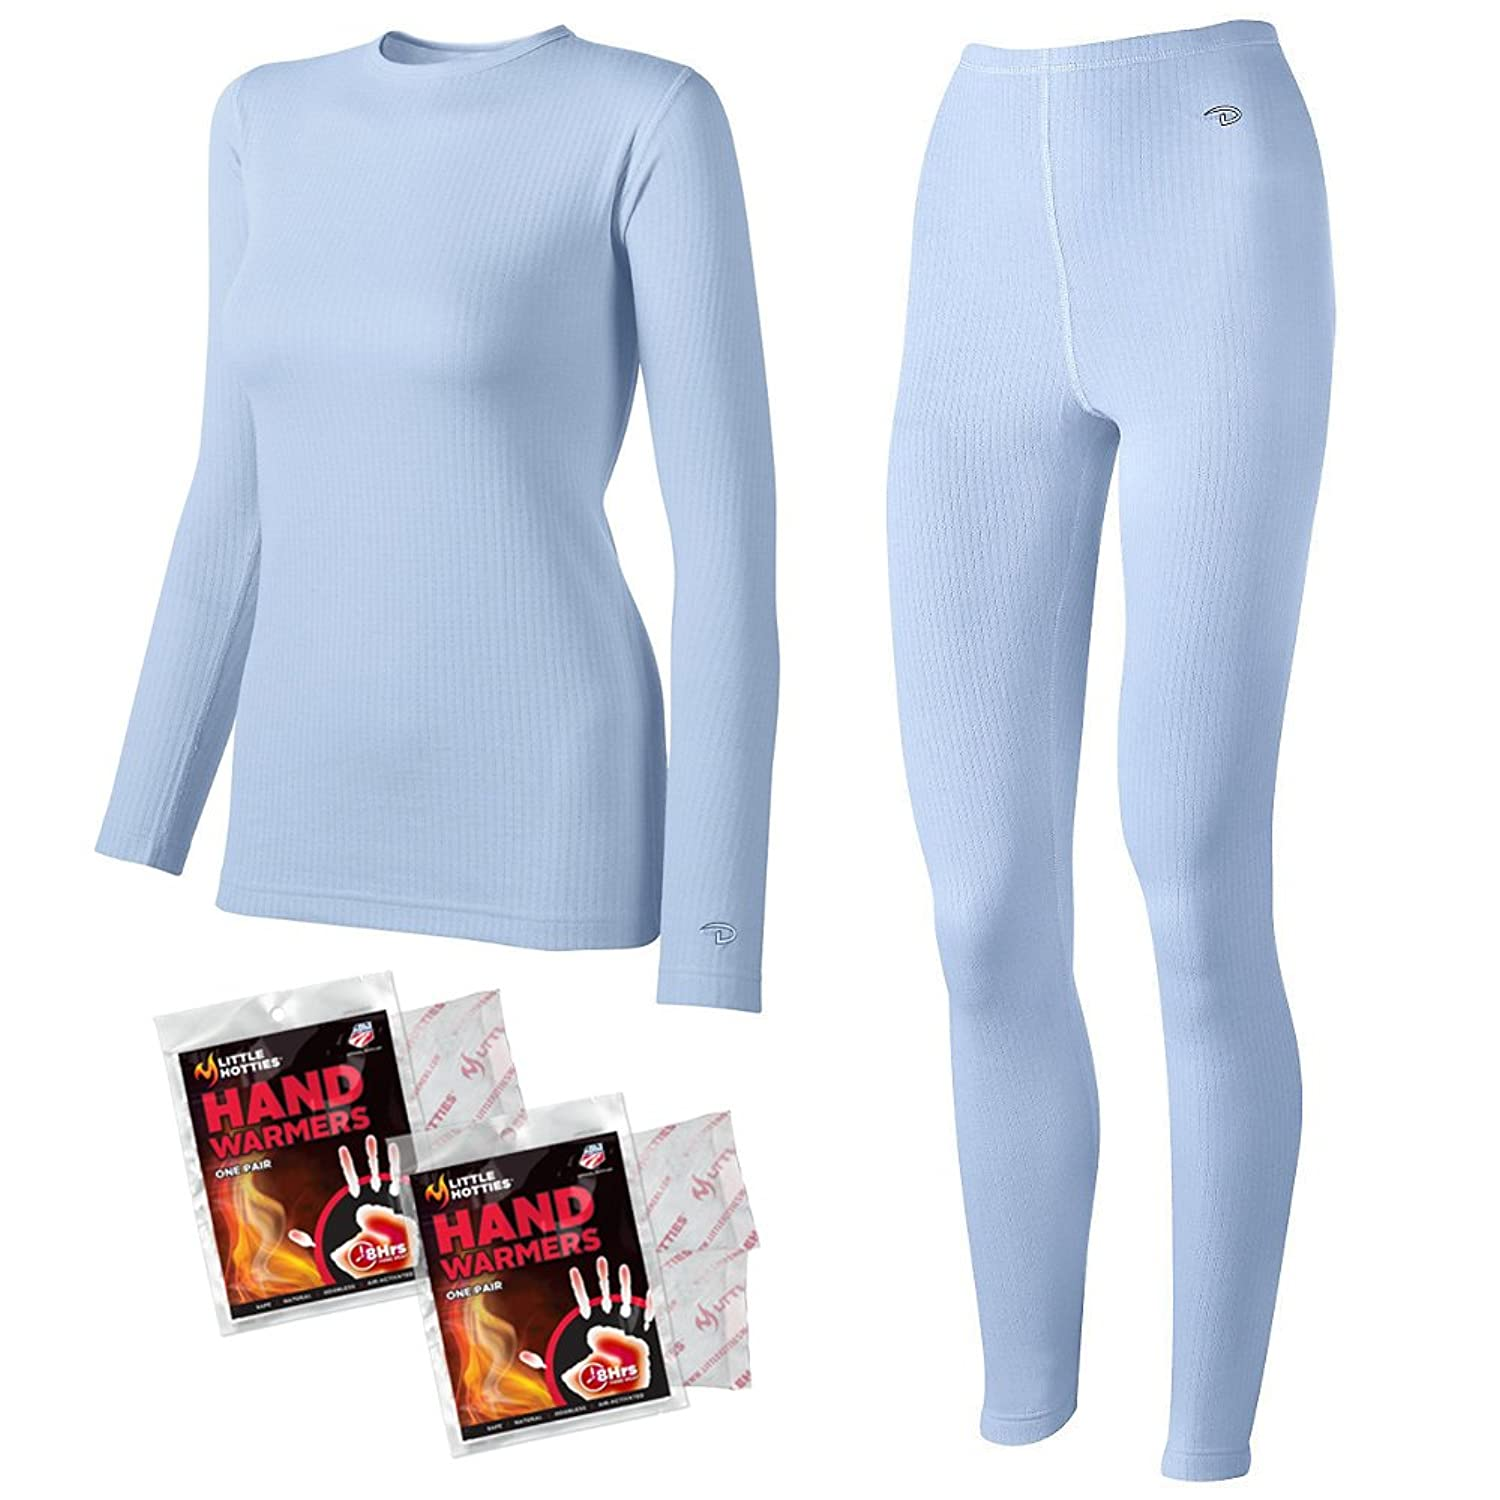 Duofold Women's Tagless Thermal Shirt and Long Underwear Base Layer